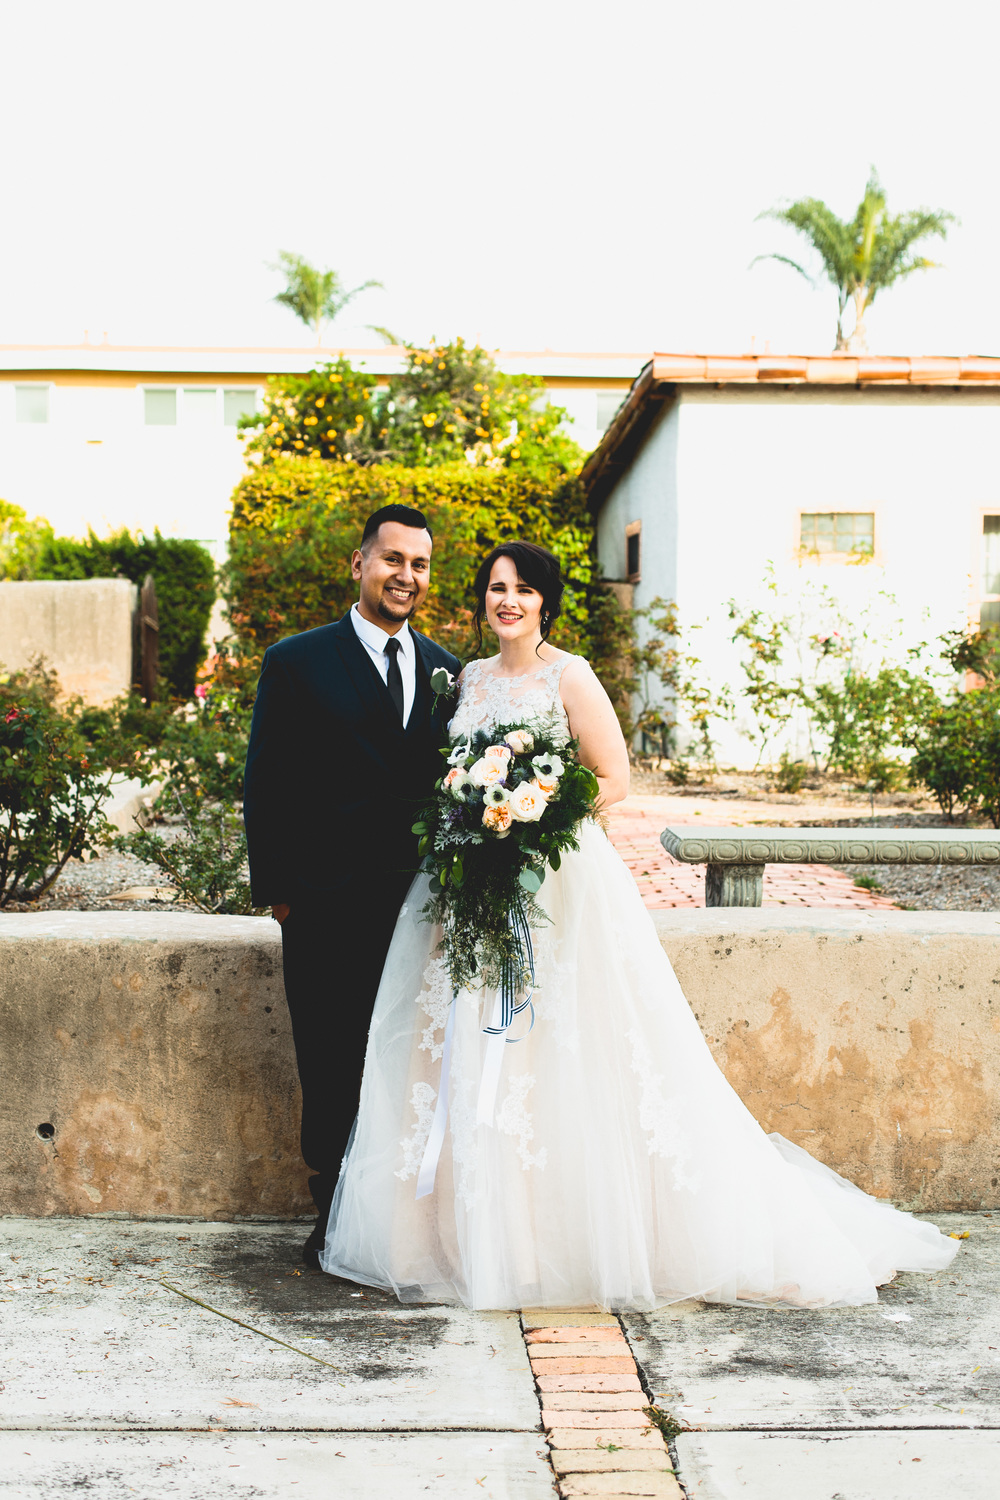 Tiffany + Javier (769 of 1036).jpg